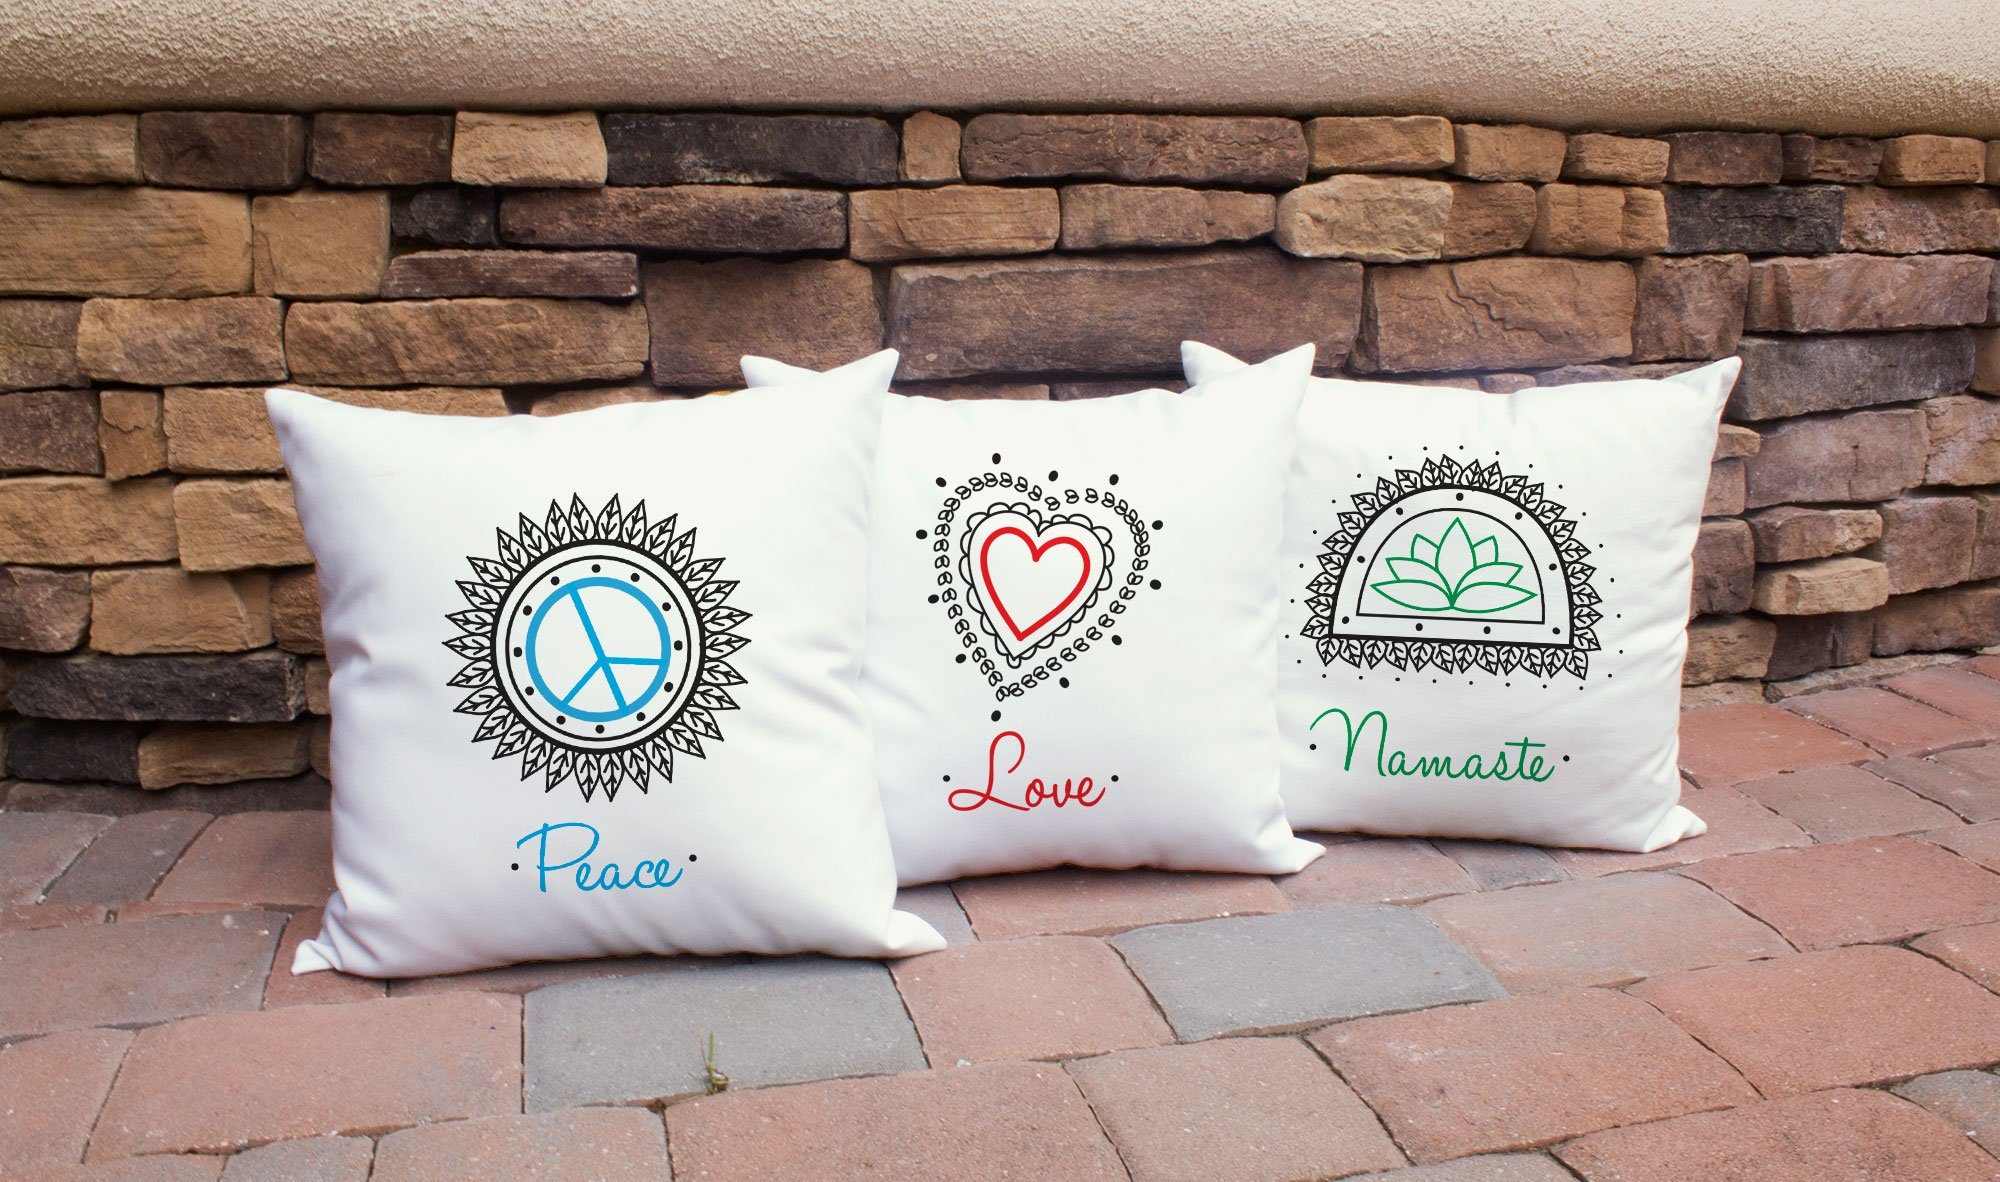 Set of 3 RoomCraft Peace Love Namaste Throw Pillow Covers 20x20 Inch Square White Outdoor Yoga Shams by RoomCraft (Image #2)